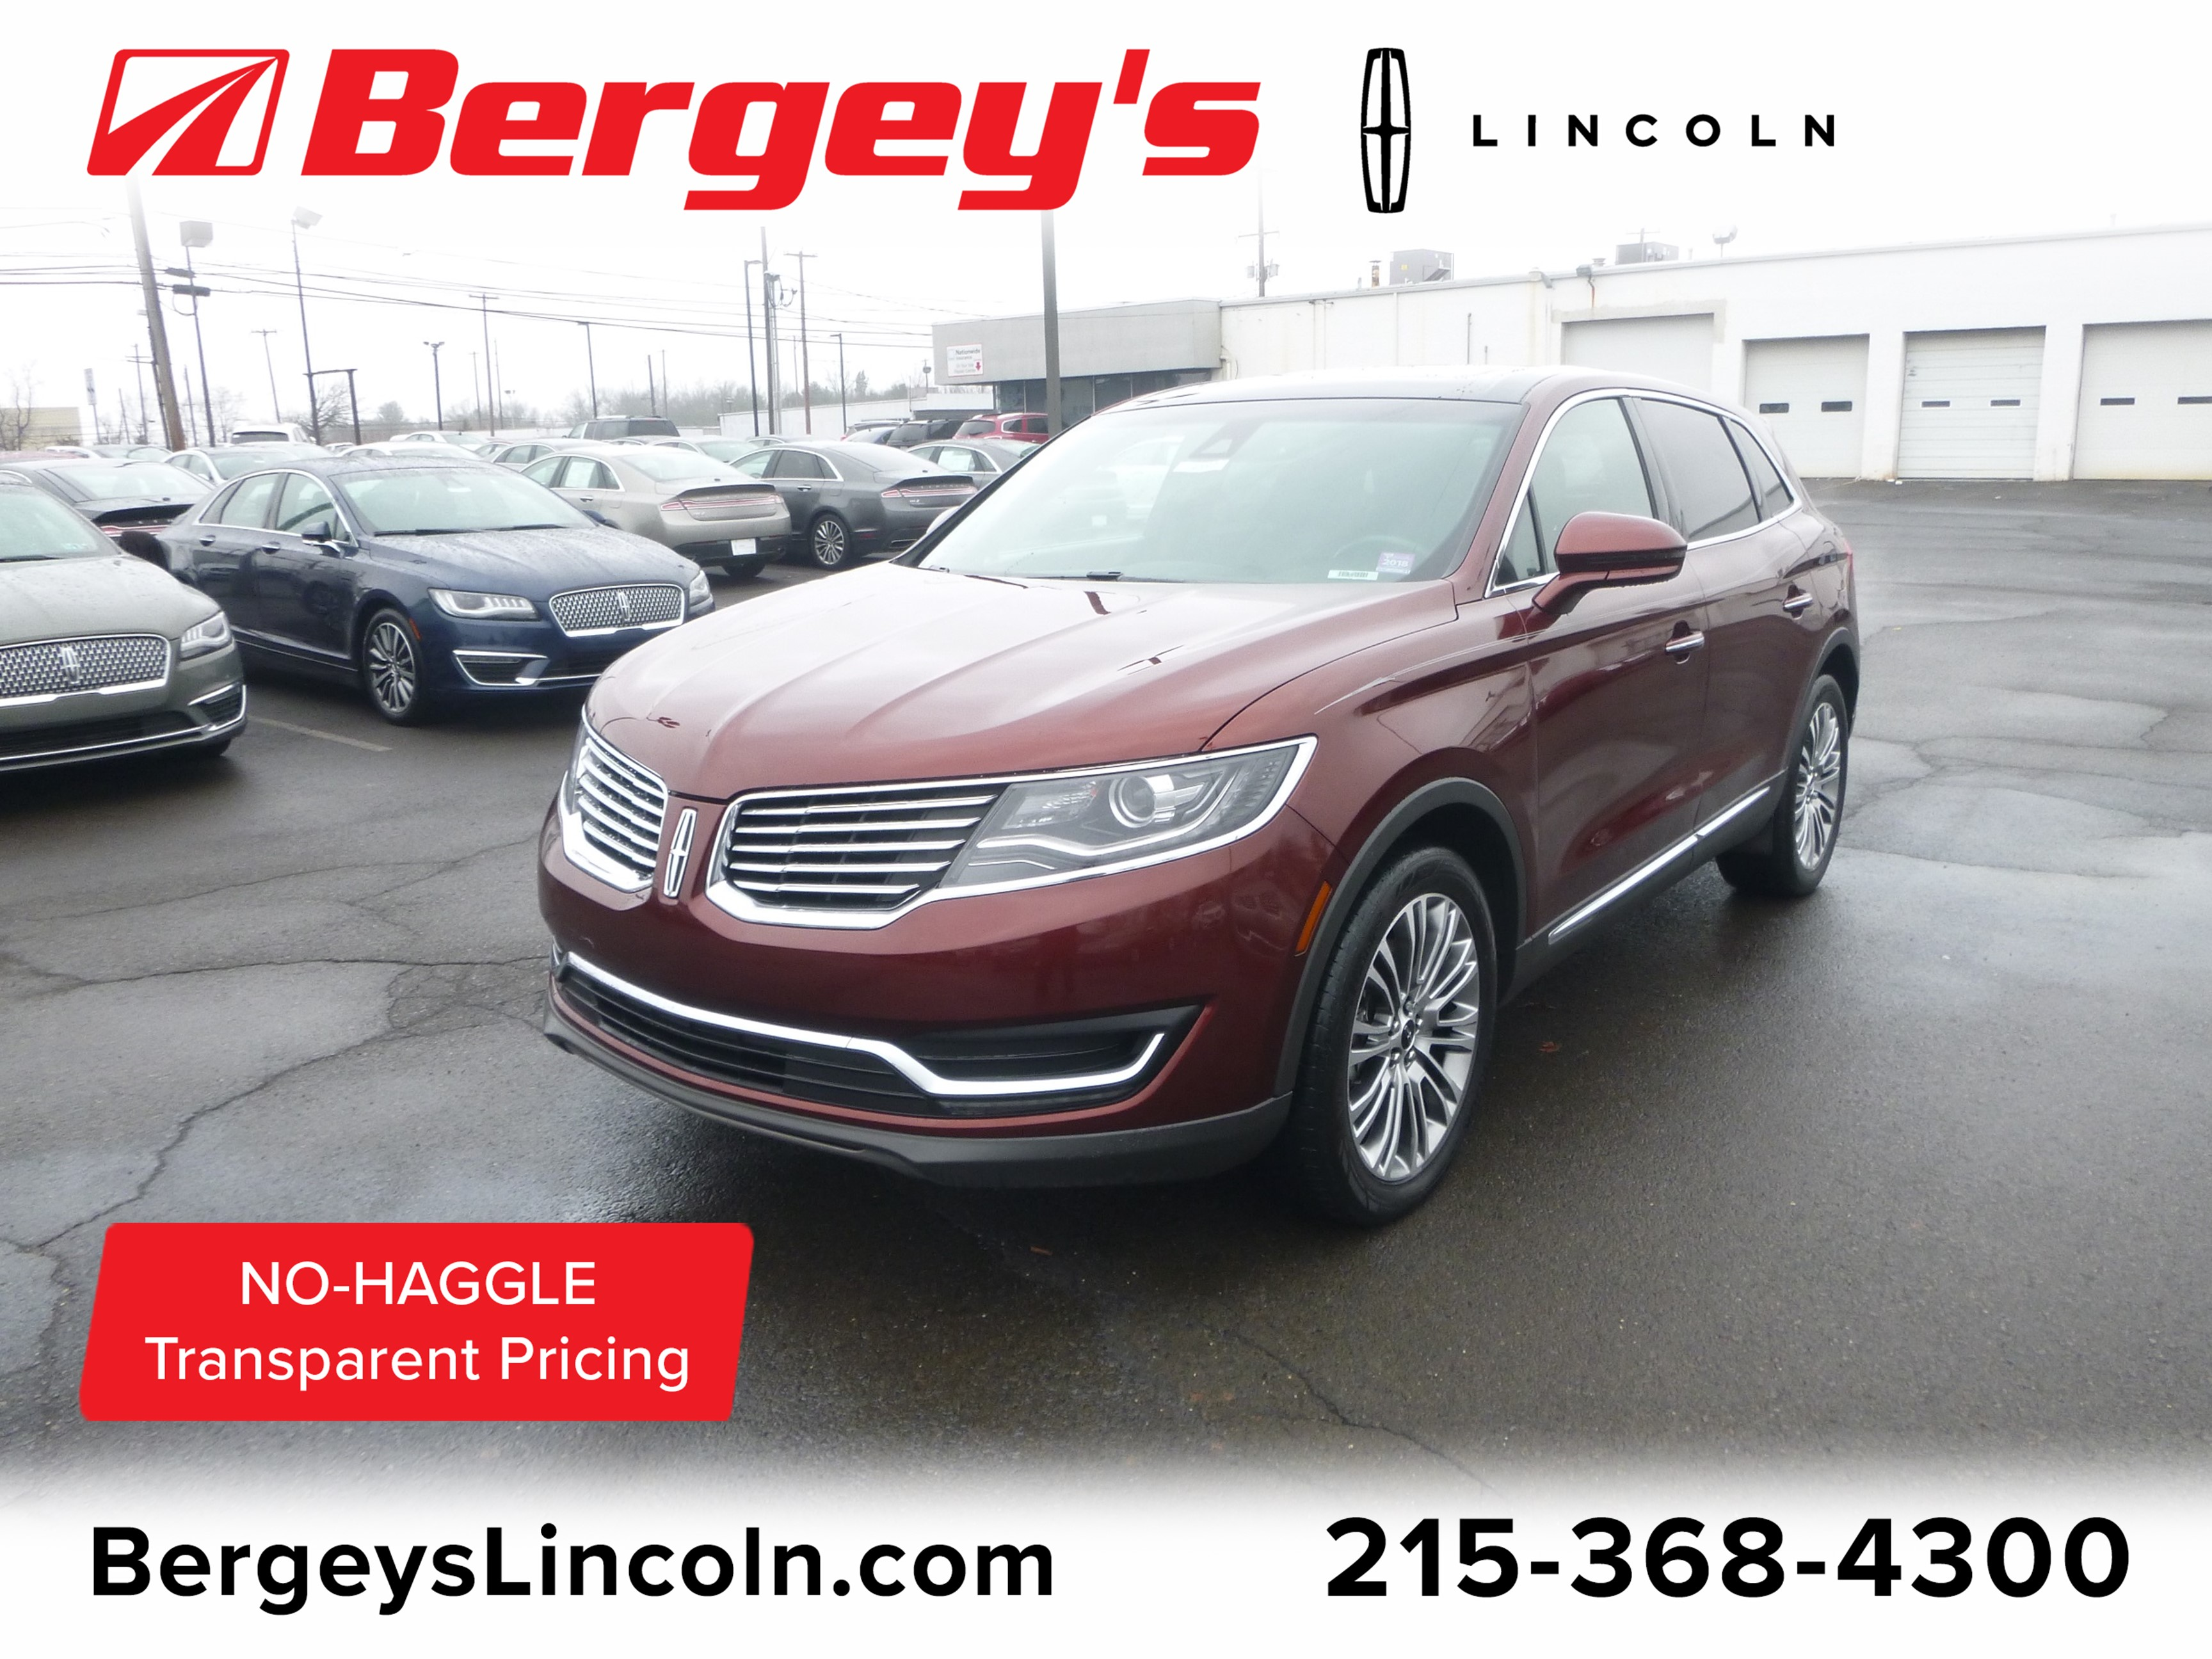 2016 Lincoln MKX 3.7L AWD Reserve w/ Panoramic Vista Roof & Nav SUV